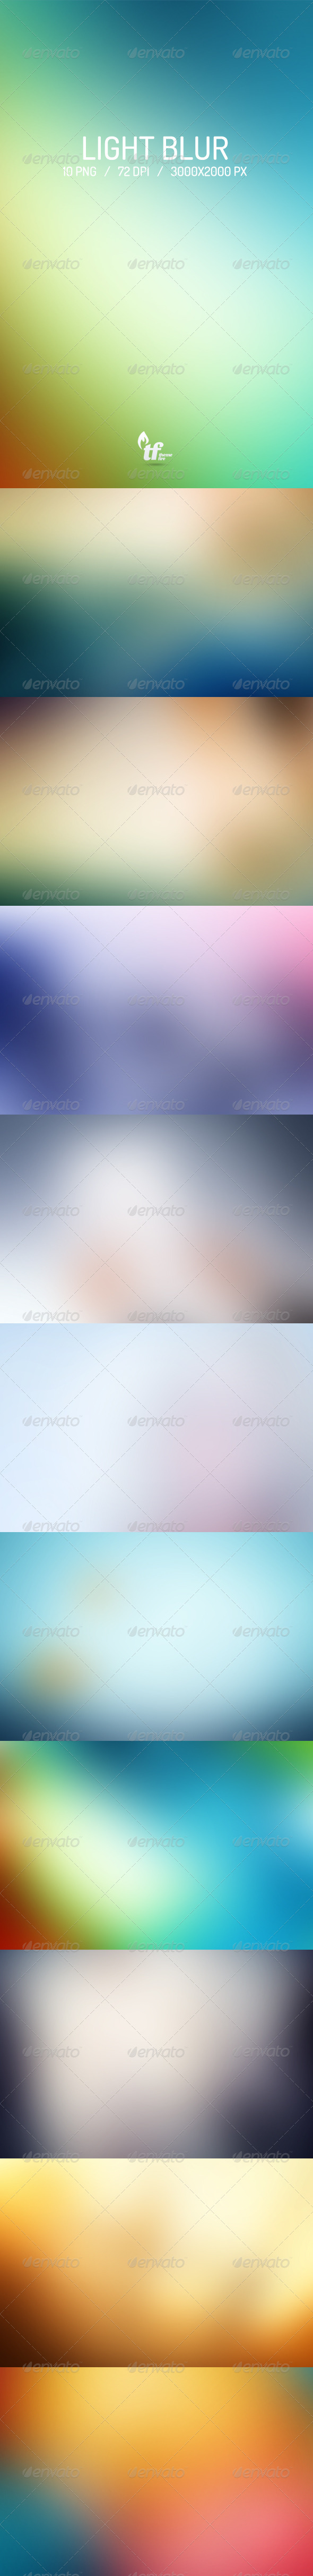 GraphicRiver Light Blur Backgrounds 6847718